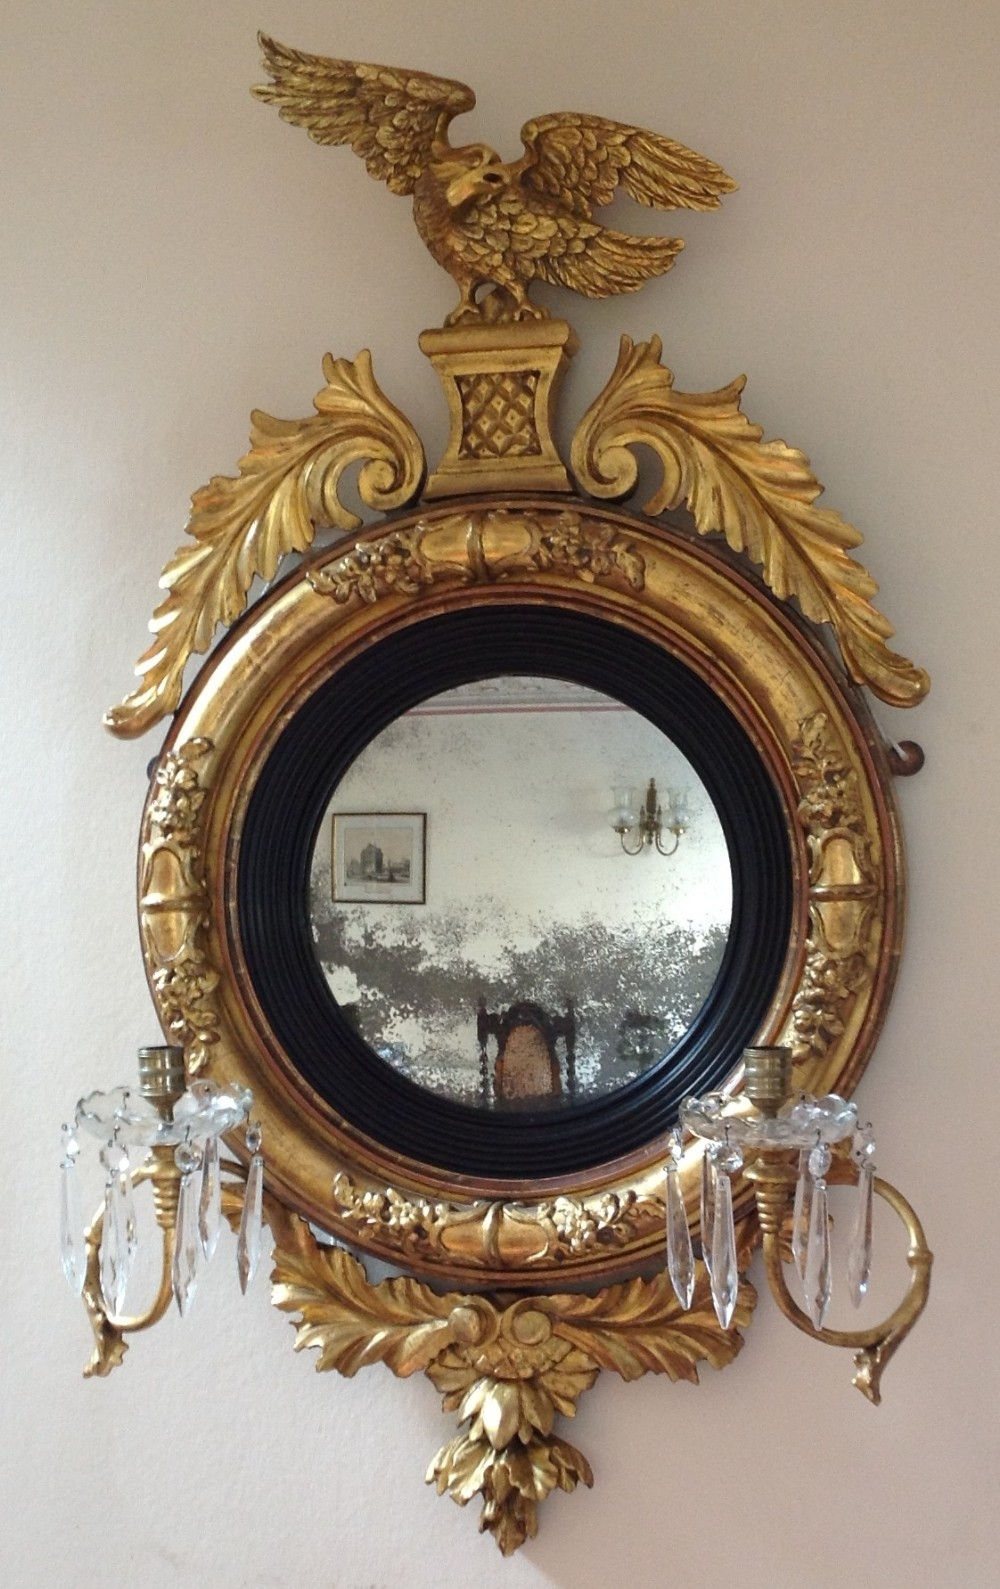 Stunning Regency Convex Mirror 250628 Sellingantiquescouk Pertaining To Antique Convex Mirrors For Sale (Image 15 of 15)